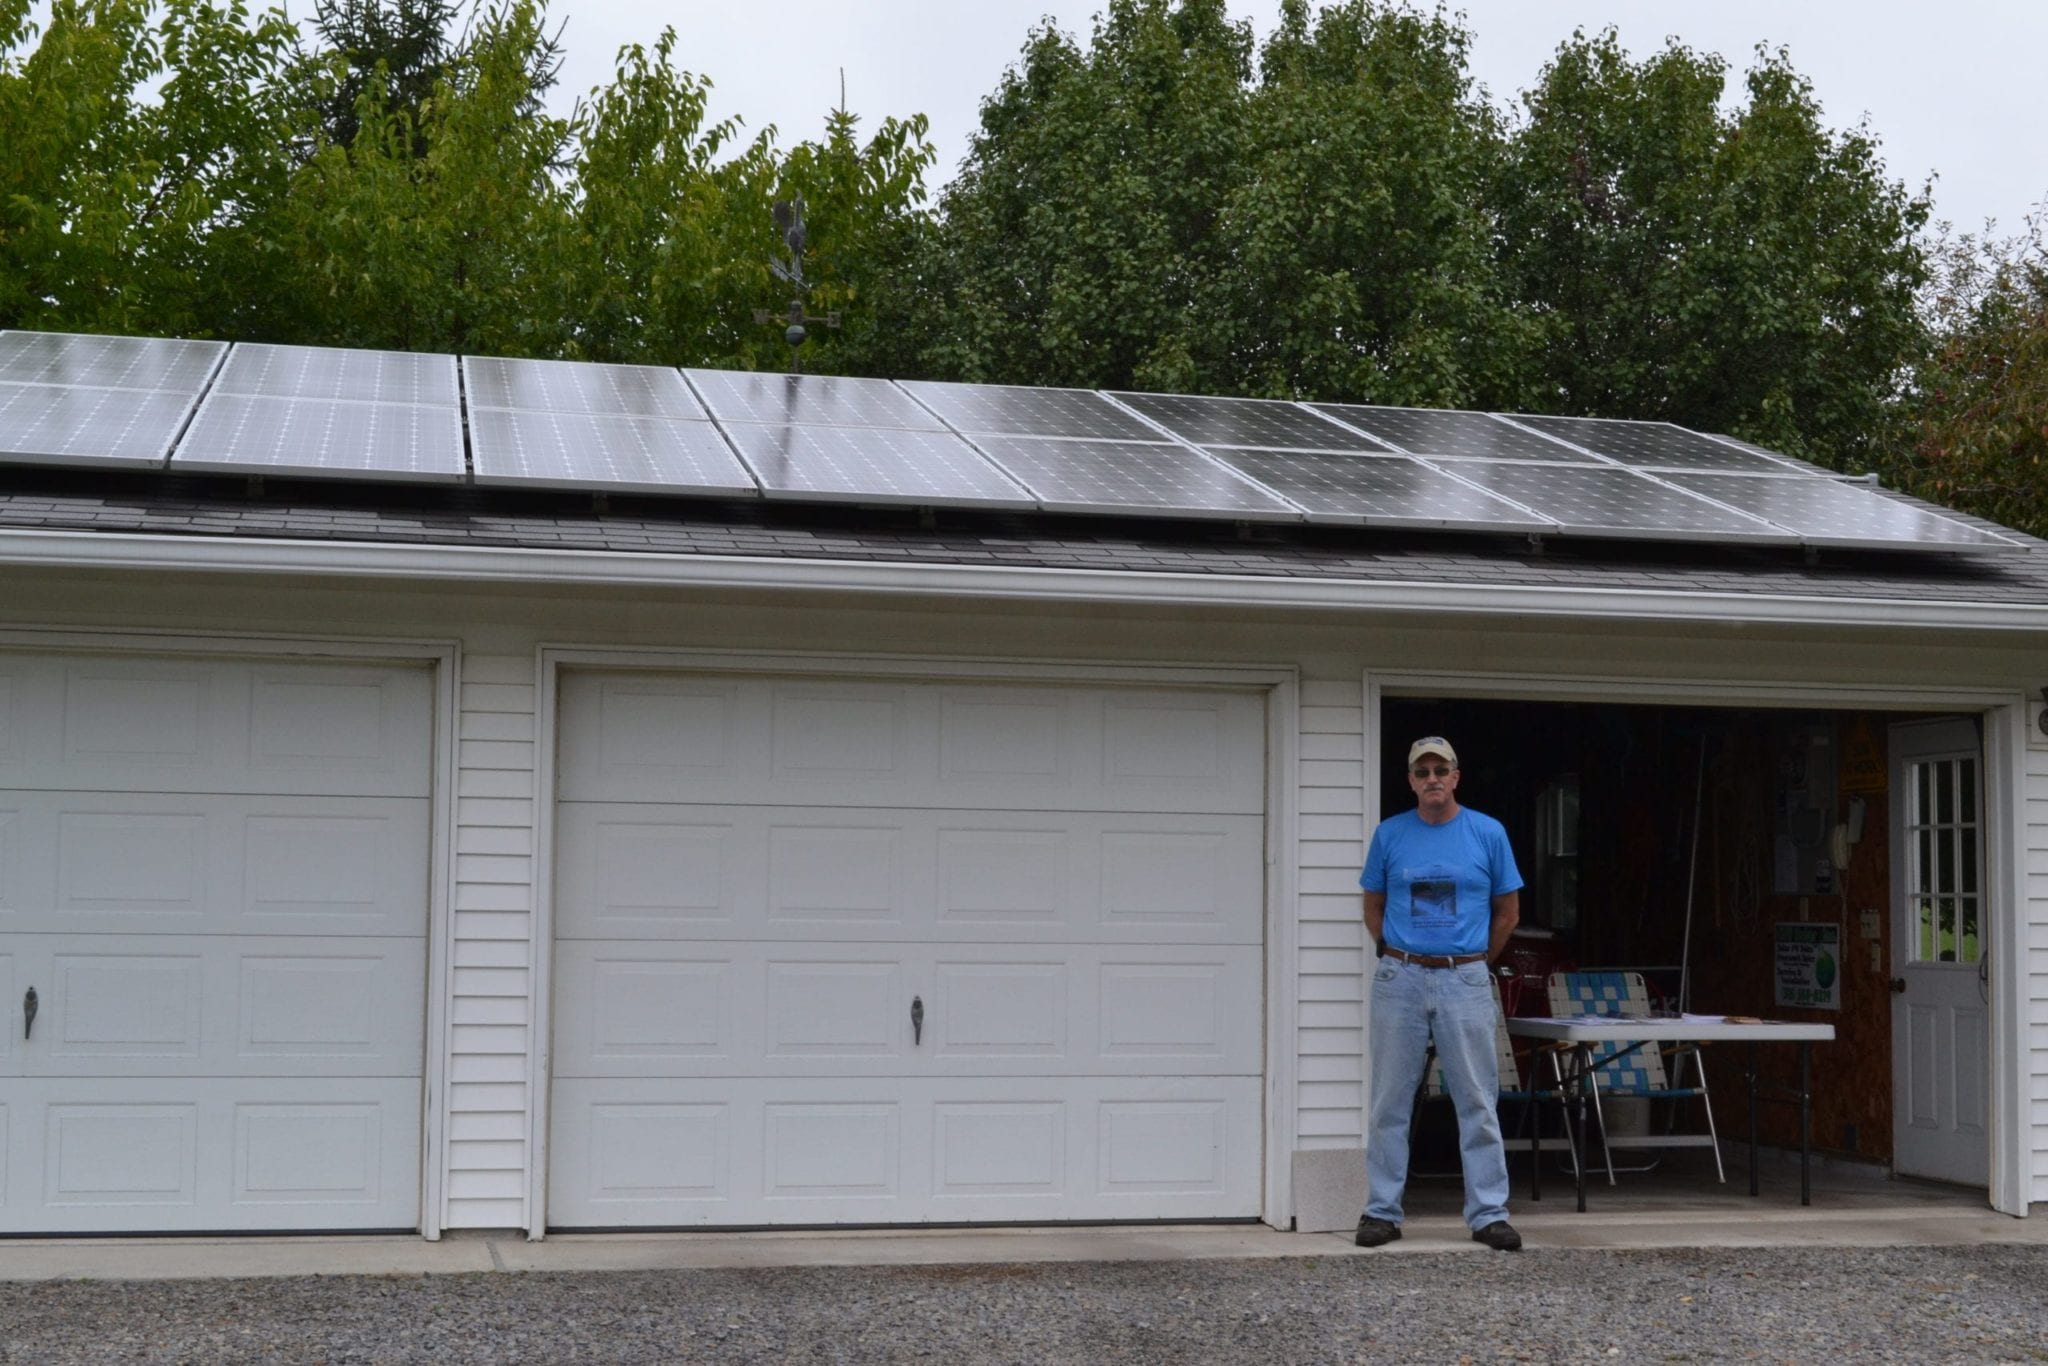 Skaneateles alternative energy tour highlights local commitment to sustainability